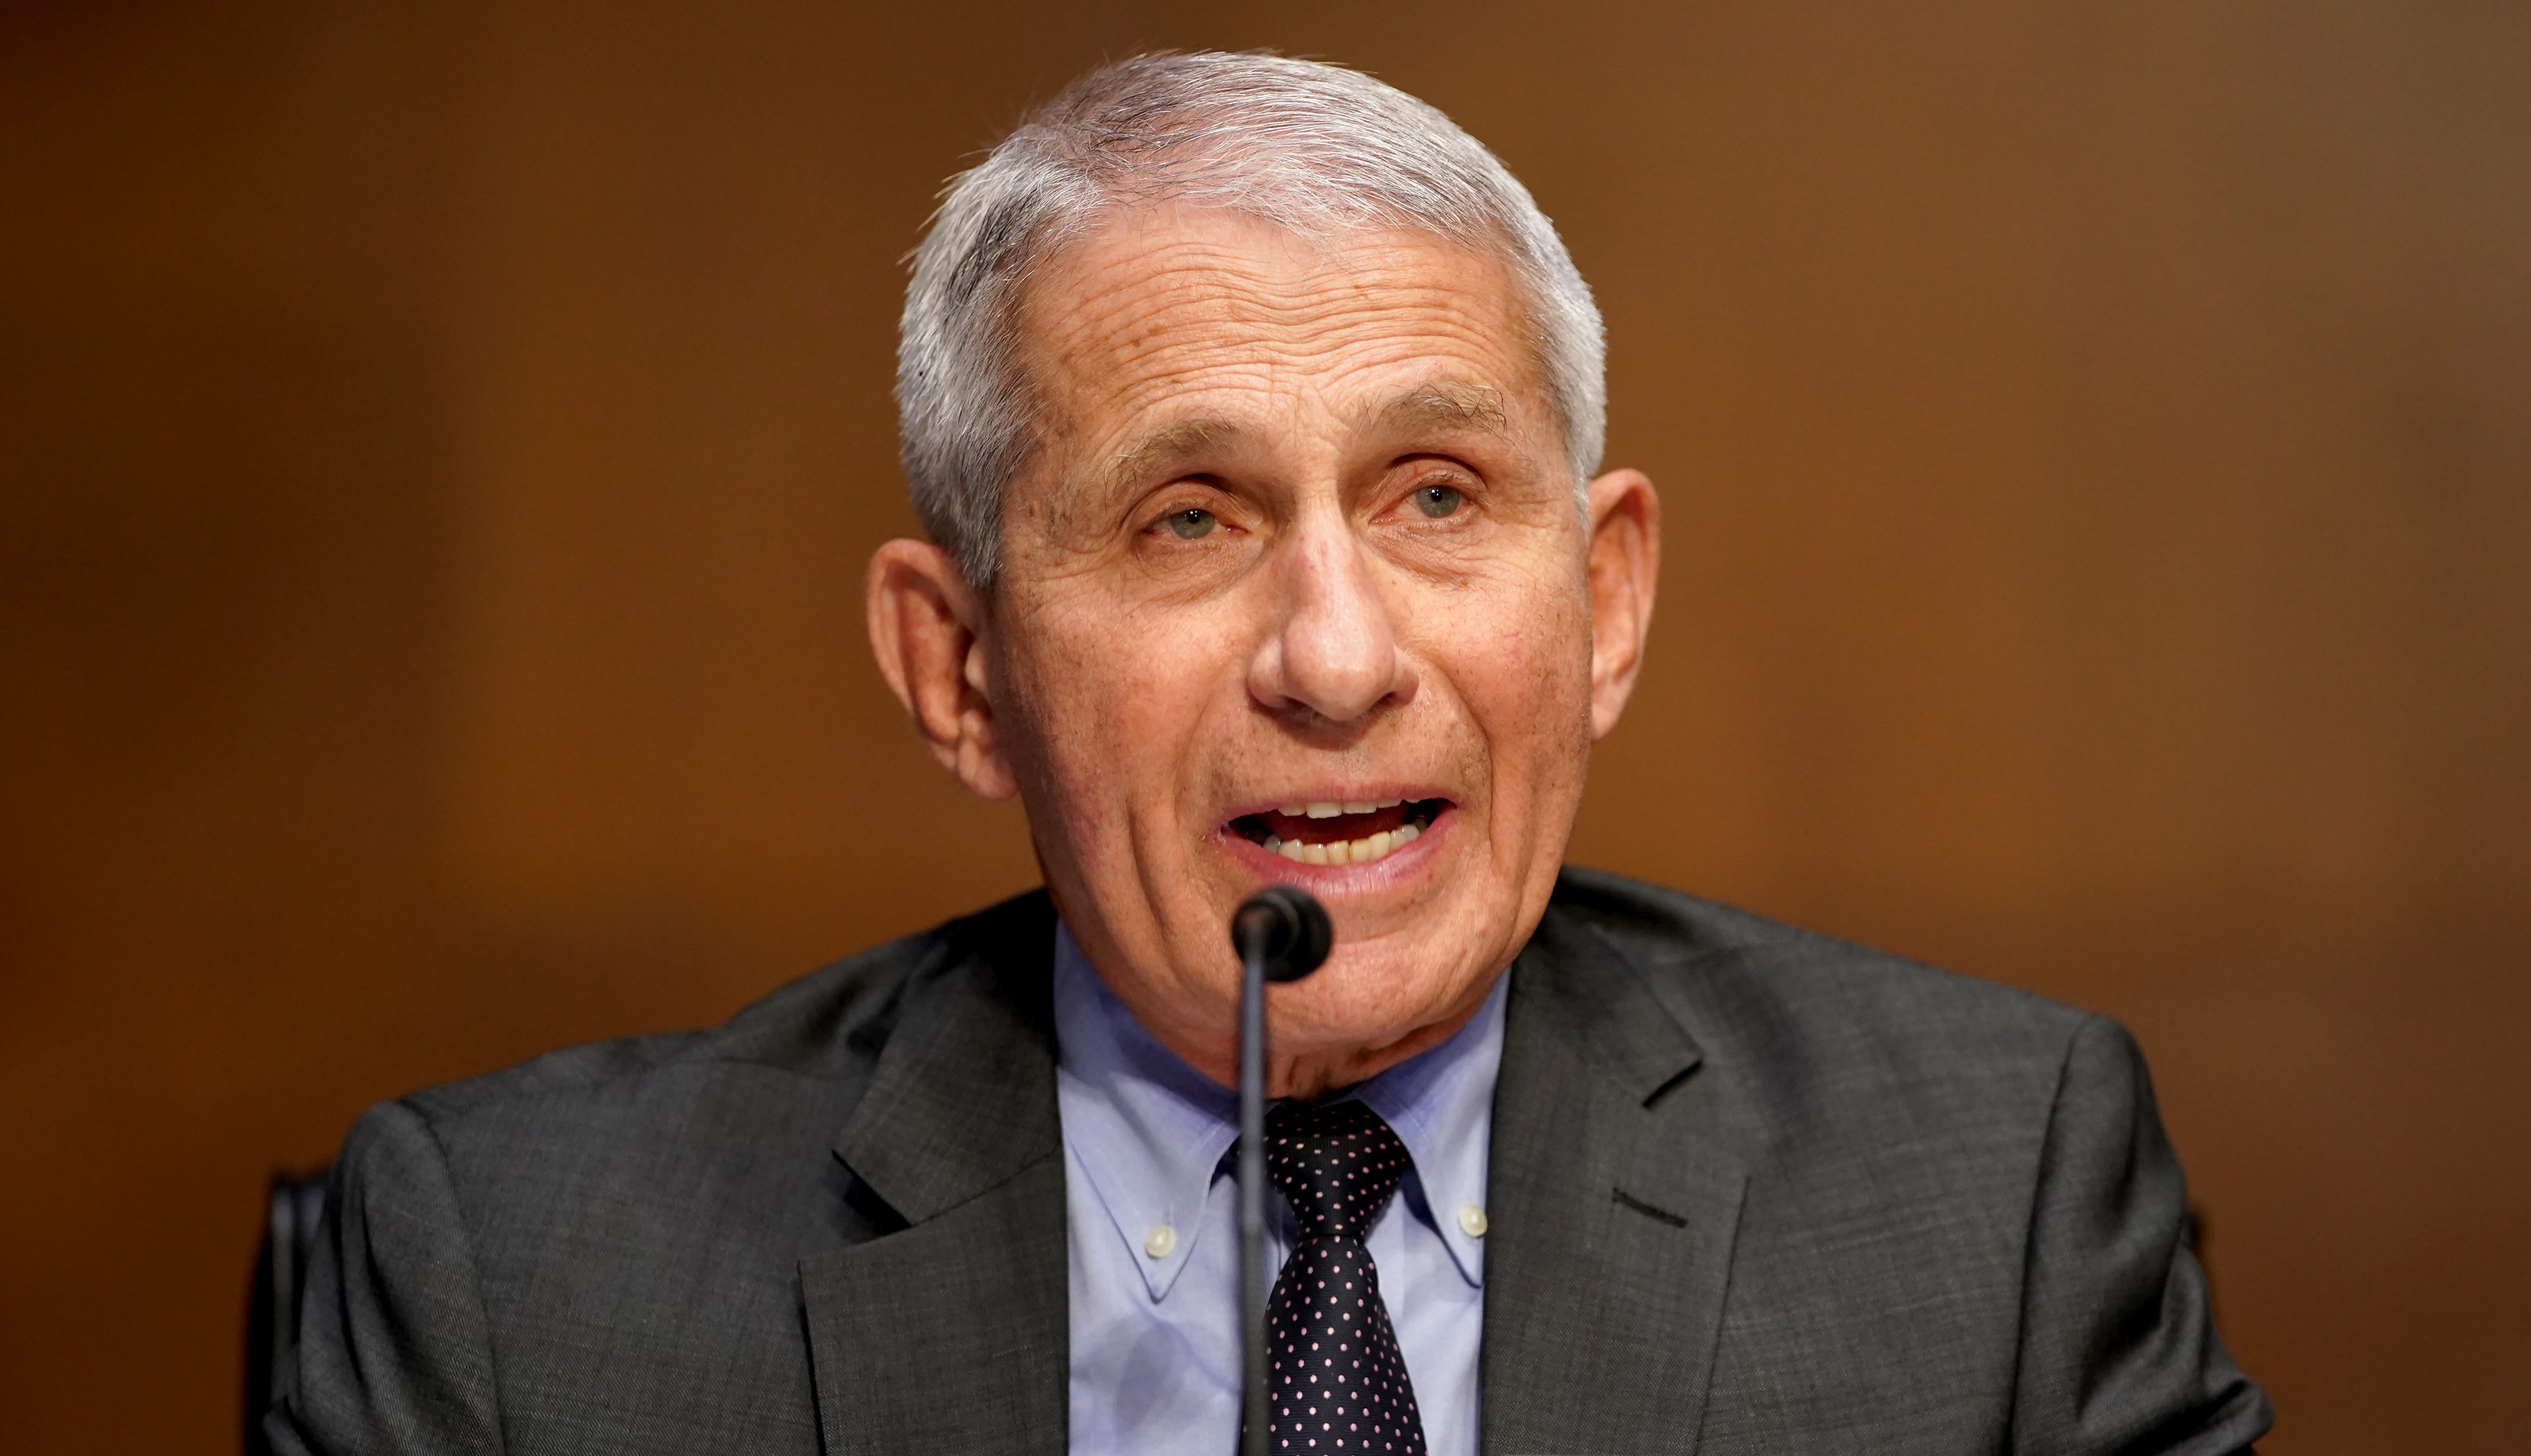 Dr. Anthony Fauci, director of the National Institute of Allergy and Infectious Diseases, speaks during a Senate Health, Education, Labor and Pensions Committee hearing to discuss the ongoing federal response to COVID-19 on May 11 in Washington, DC.